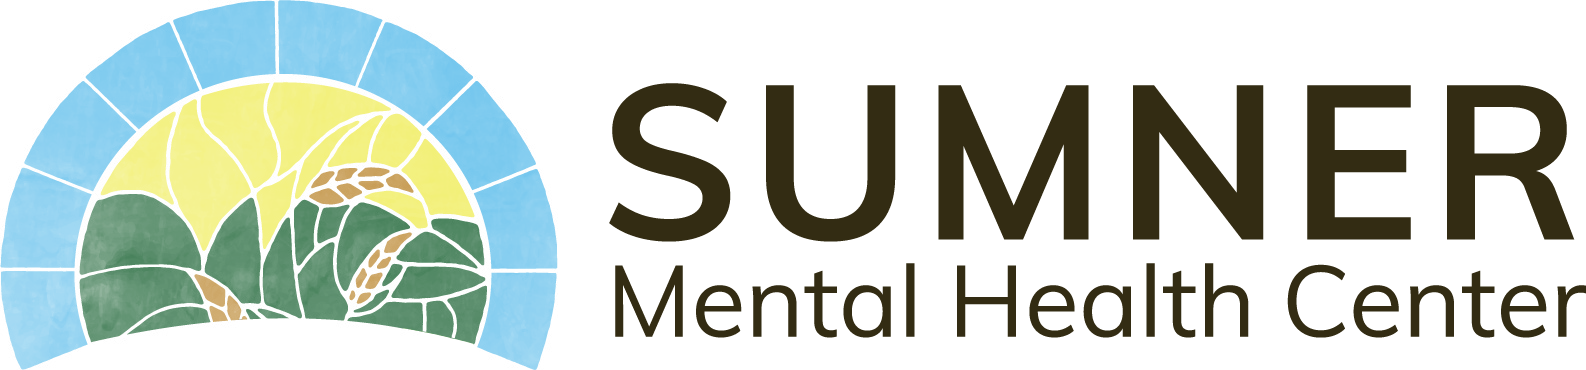 Sumner Mental Health Center